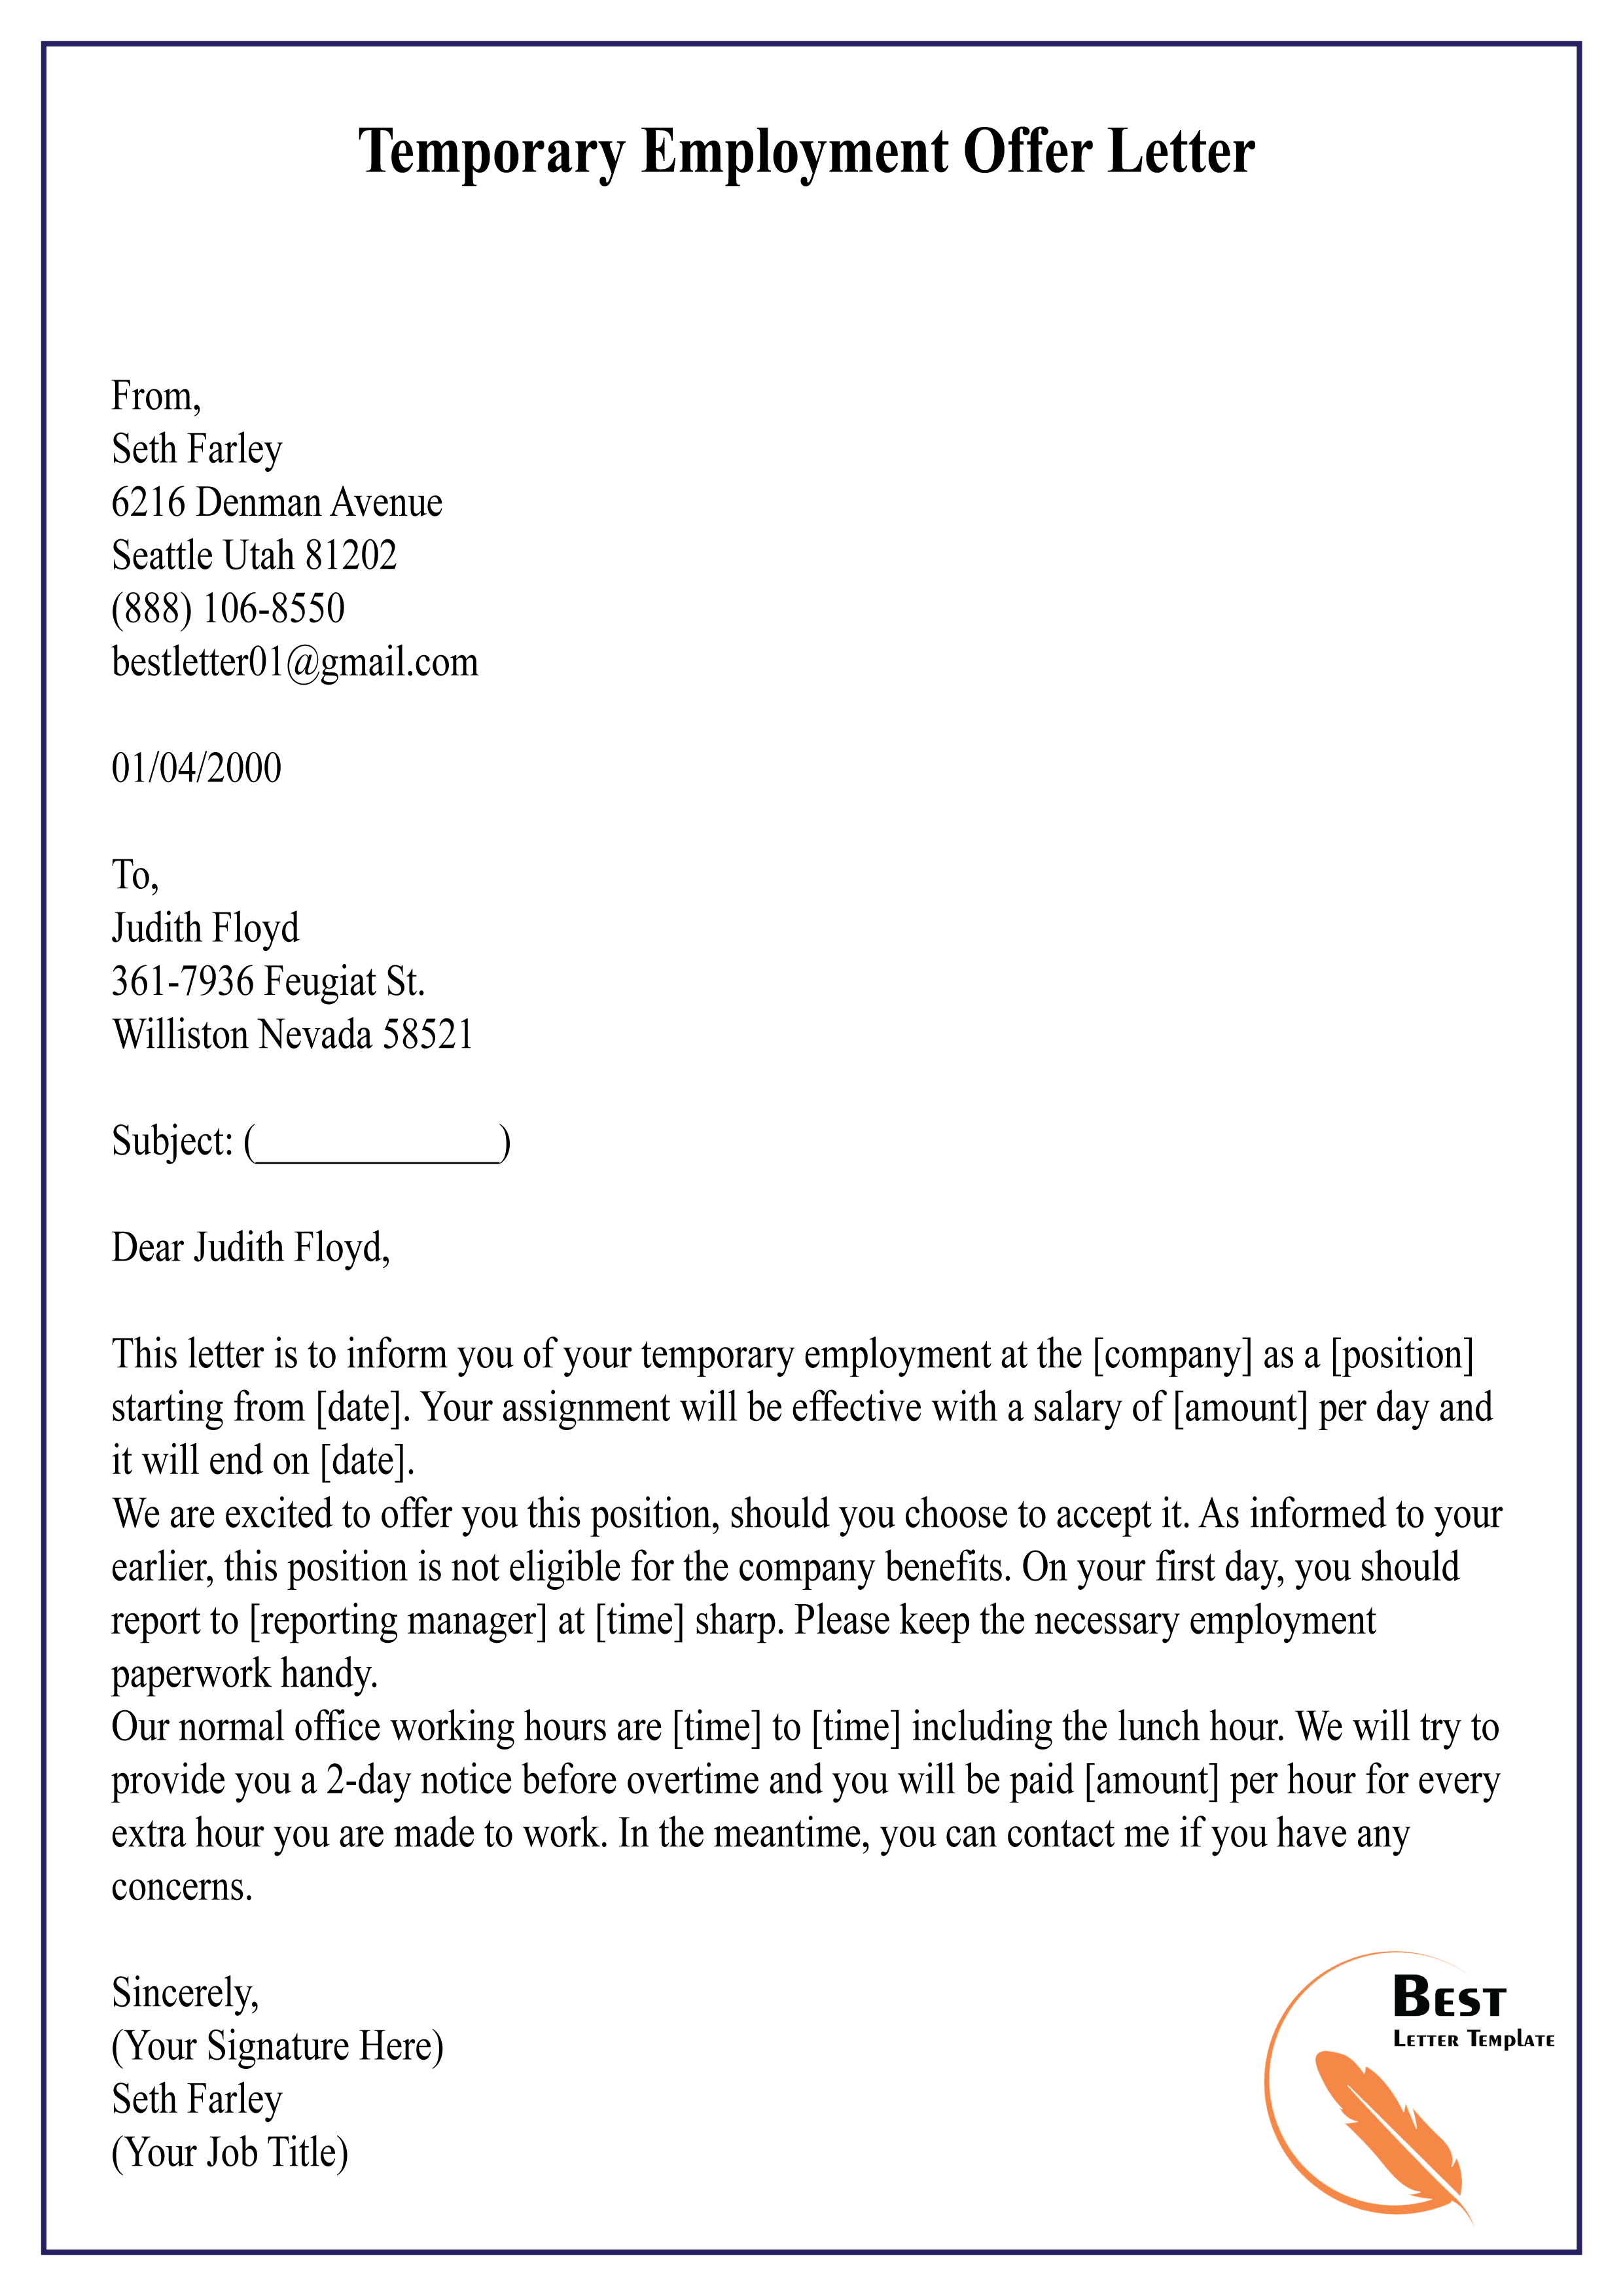 Employment Offer Letter Example from bestlettertemplate.com